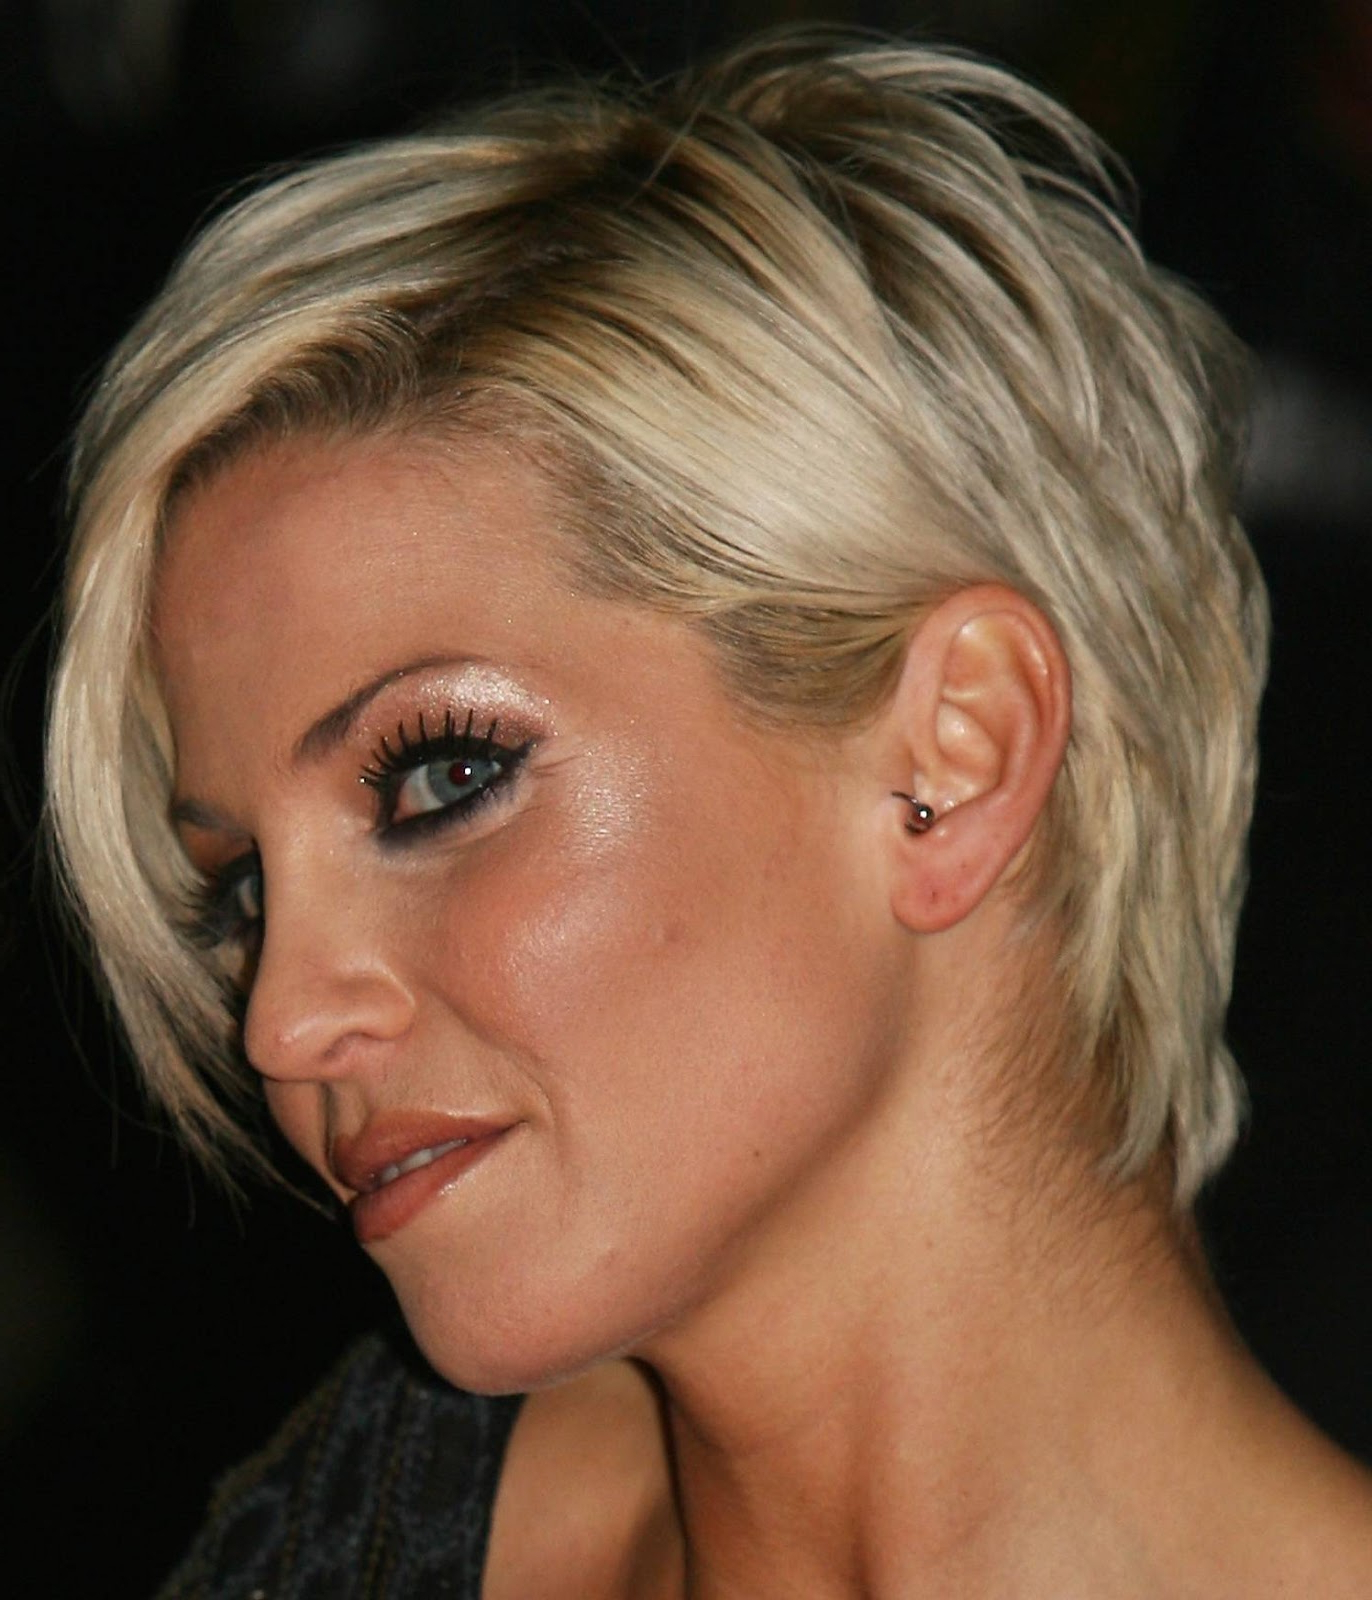 Short Hairstyle For Square Face Throughout Short Hairstyles For A Square Face (View 6 of 25)